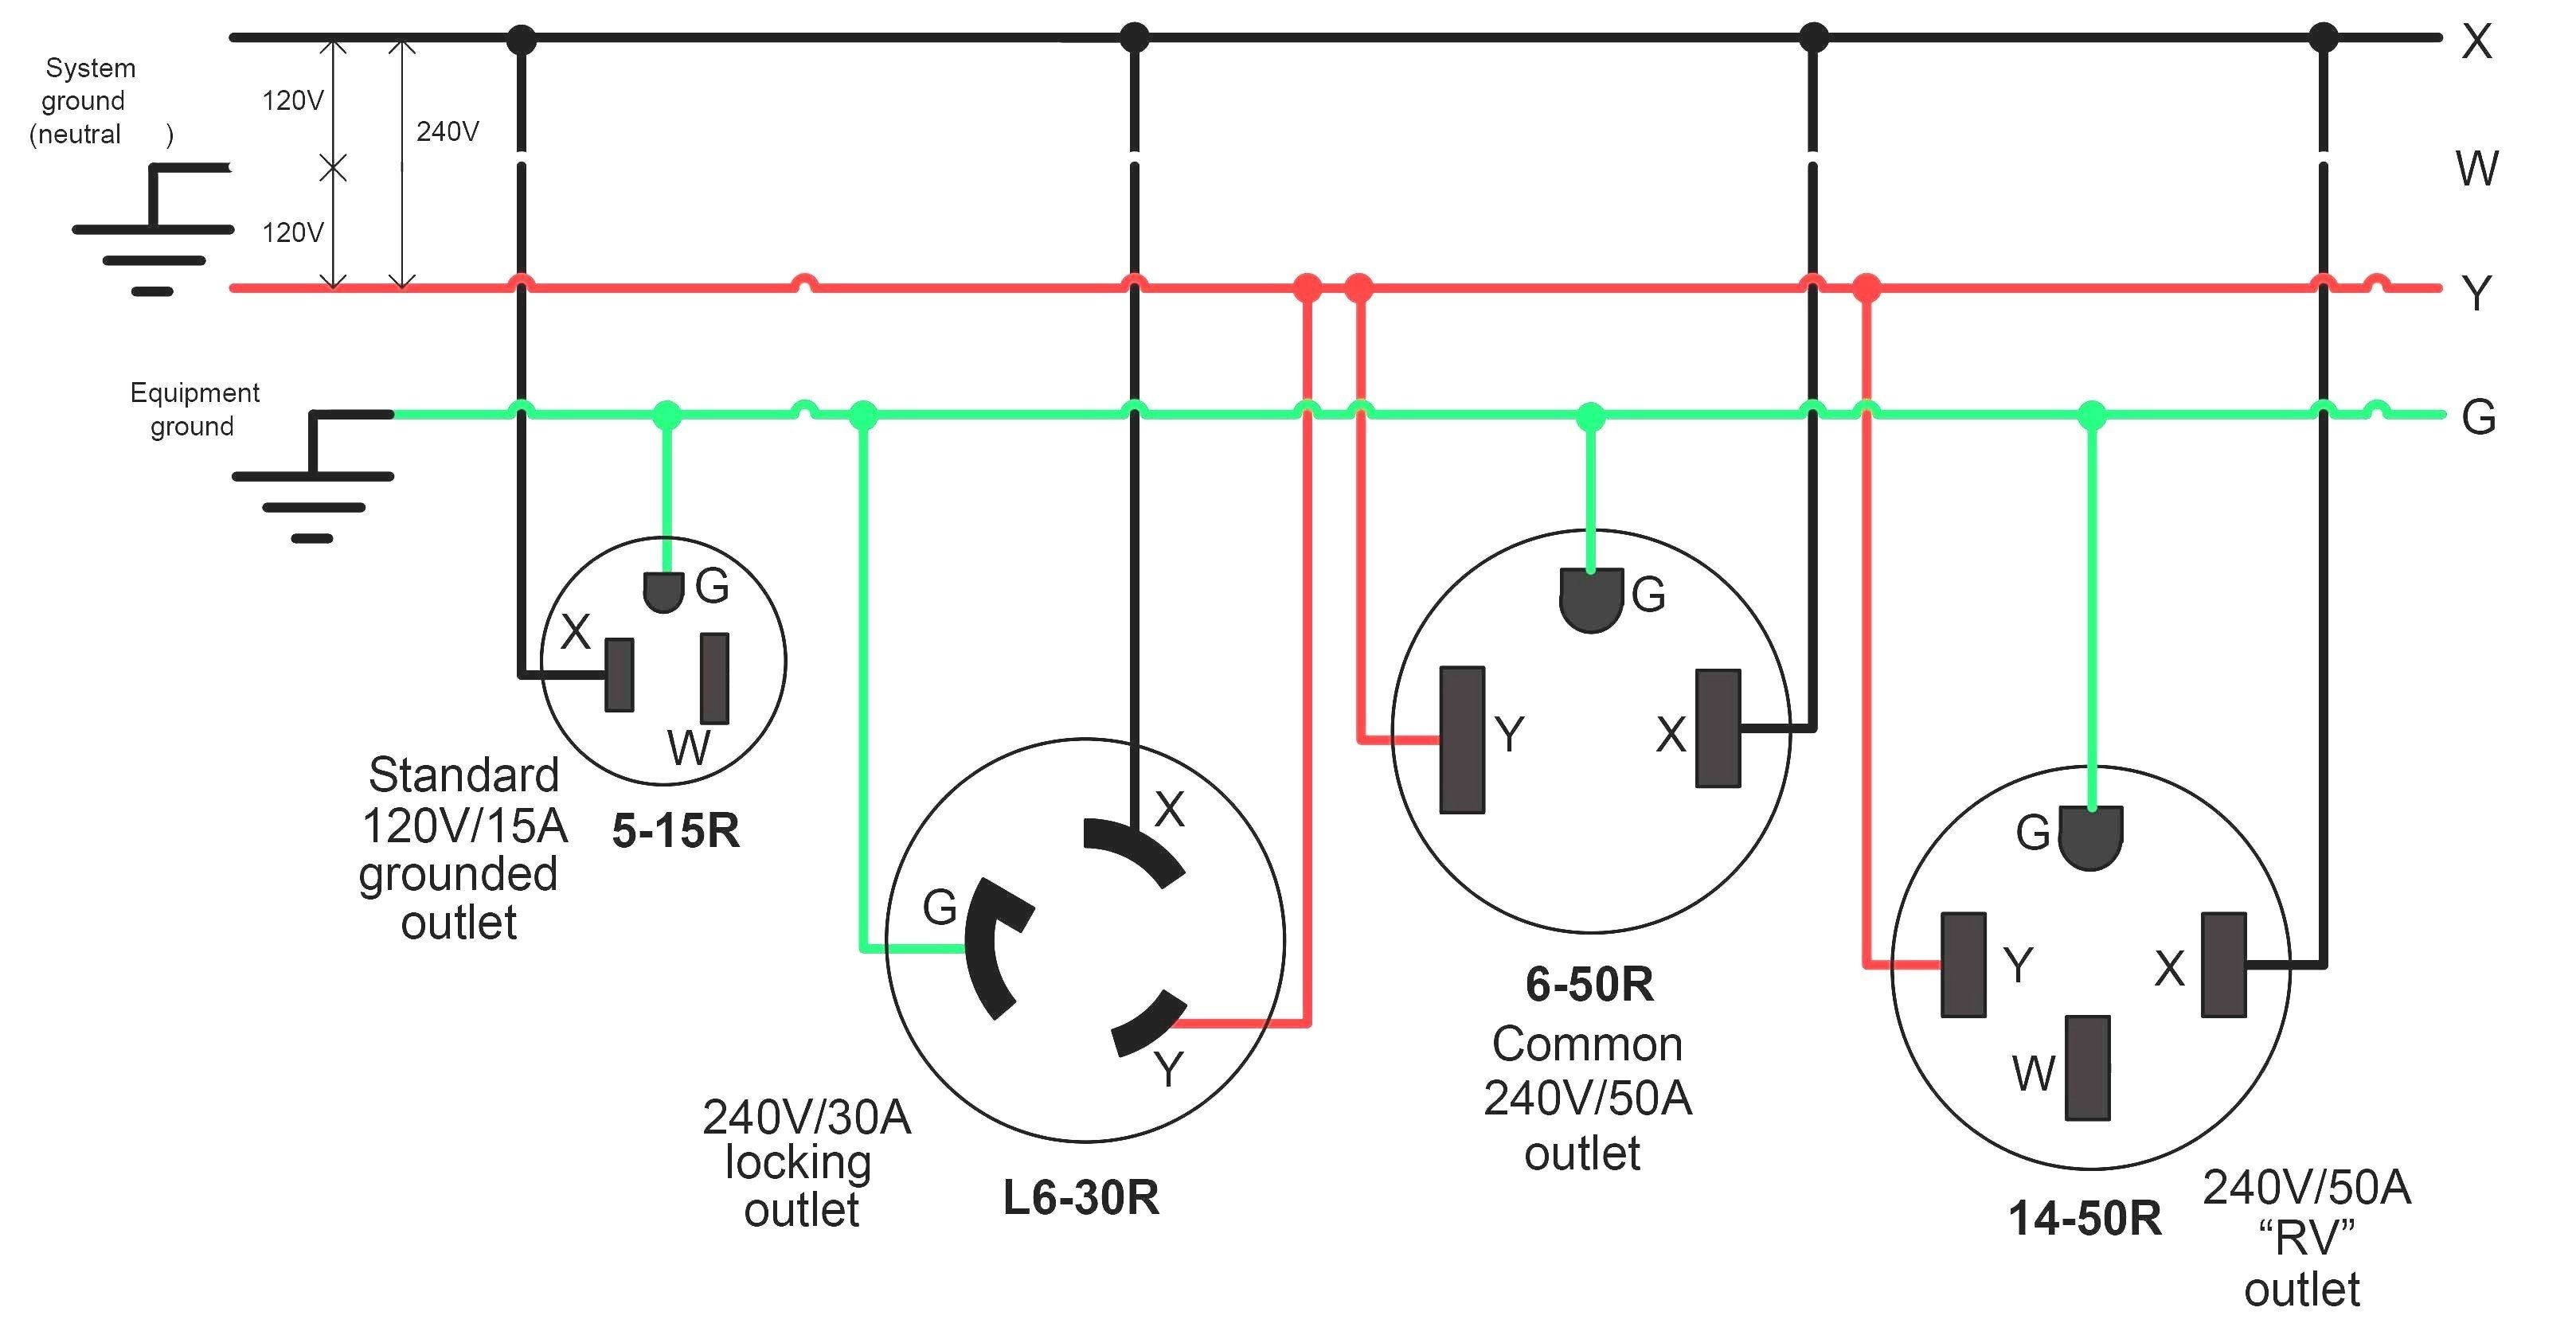 dryer wiring diagram 4 prong carbonvote mudit blog \u20224 wire 220 dryer wiring diagram wiring diagram rh a42 asphalt community de 4 prong dryer outlet wiring diagram samsung dryer plug wiring diagram 4 prong